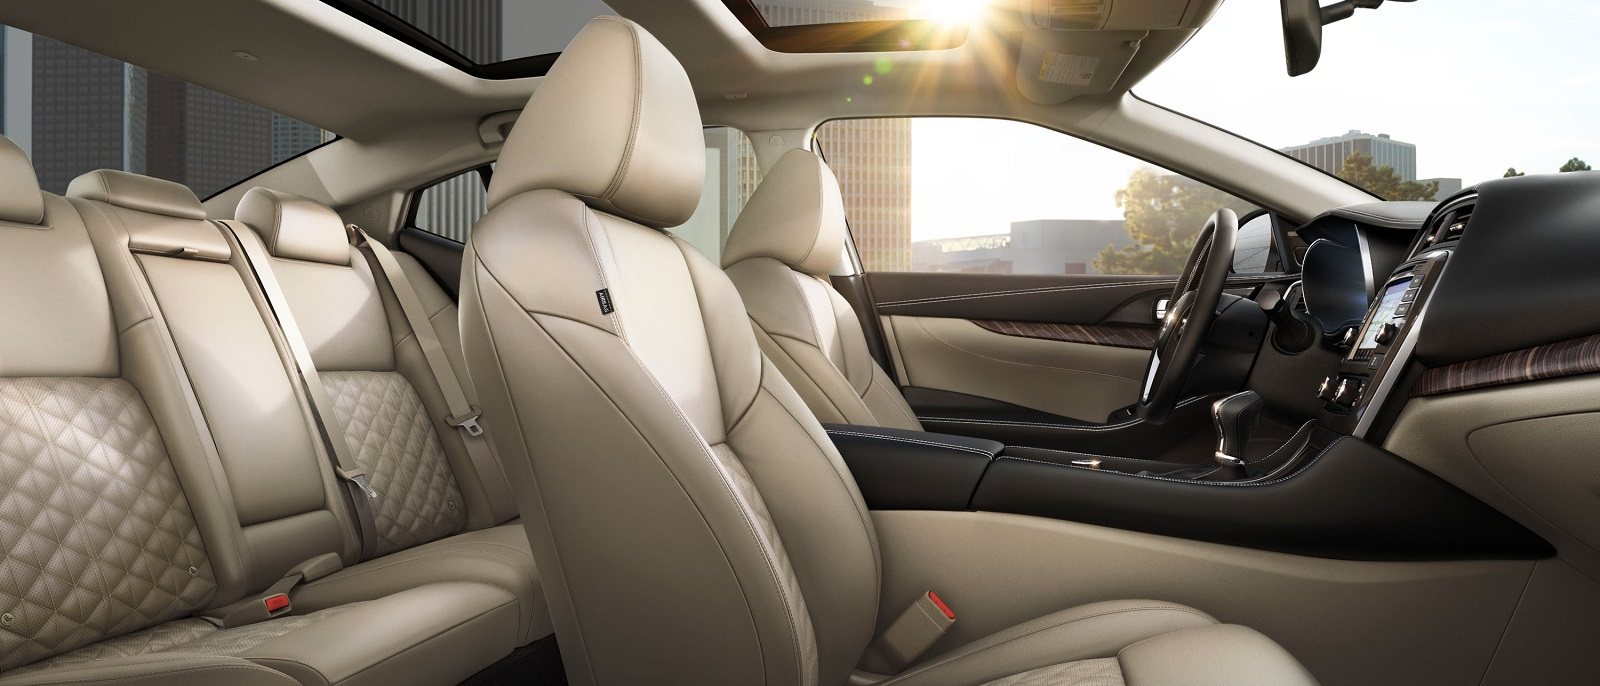 2016-nissan-maxima-interior-cashmere-leather-side-view-seating